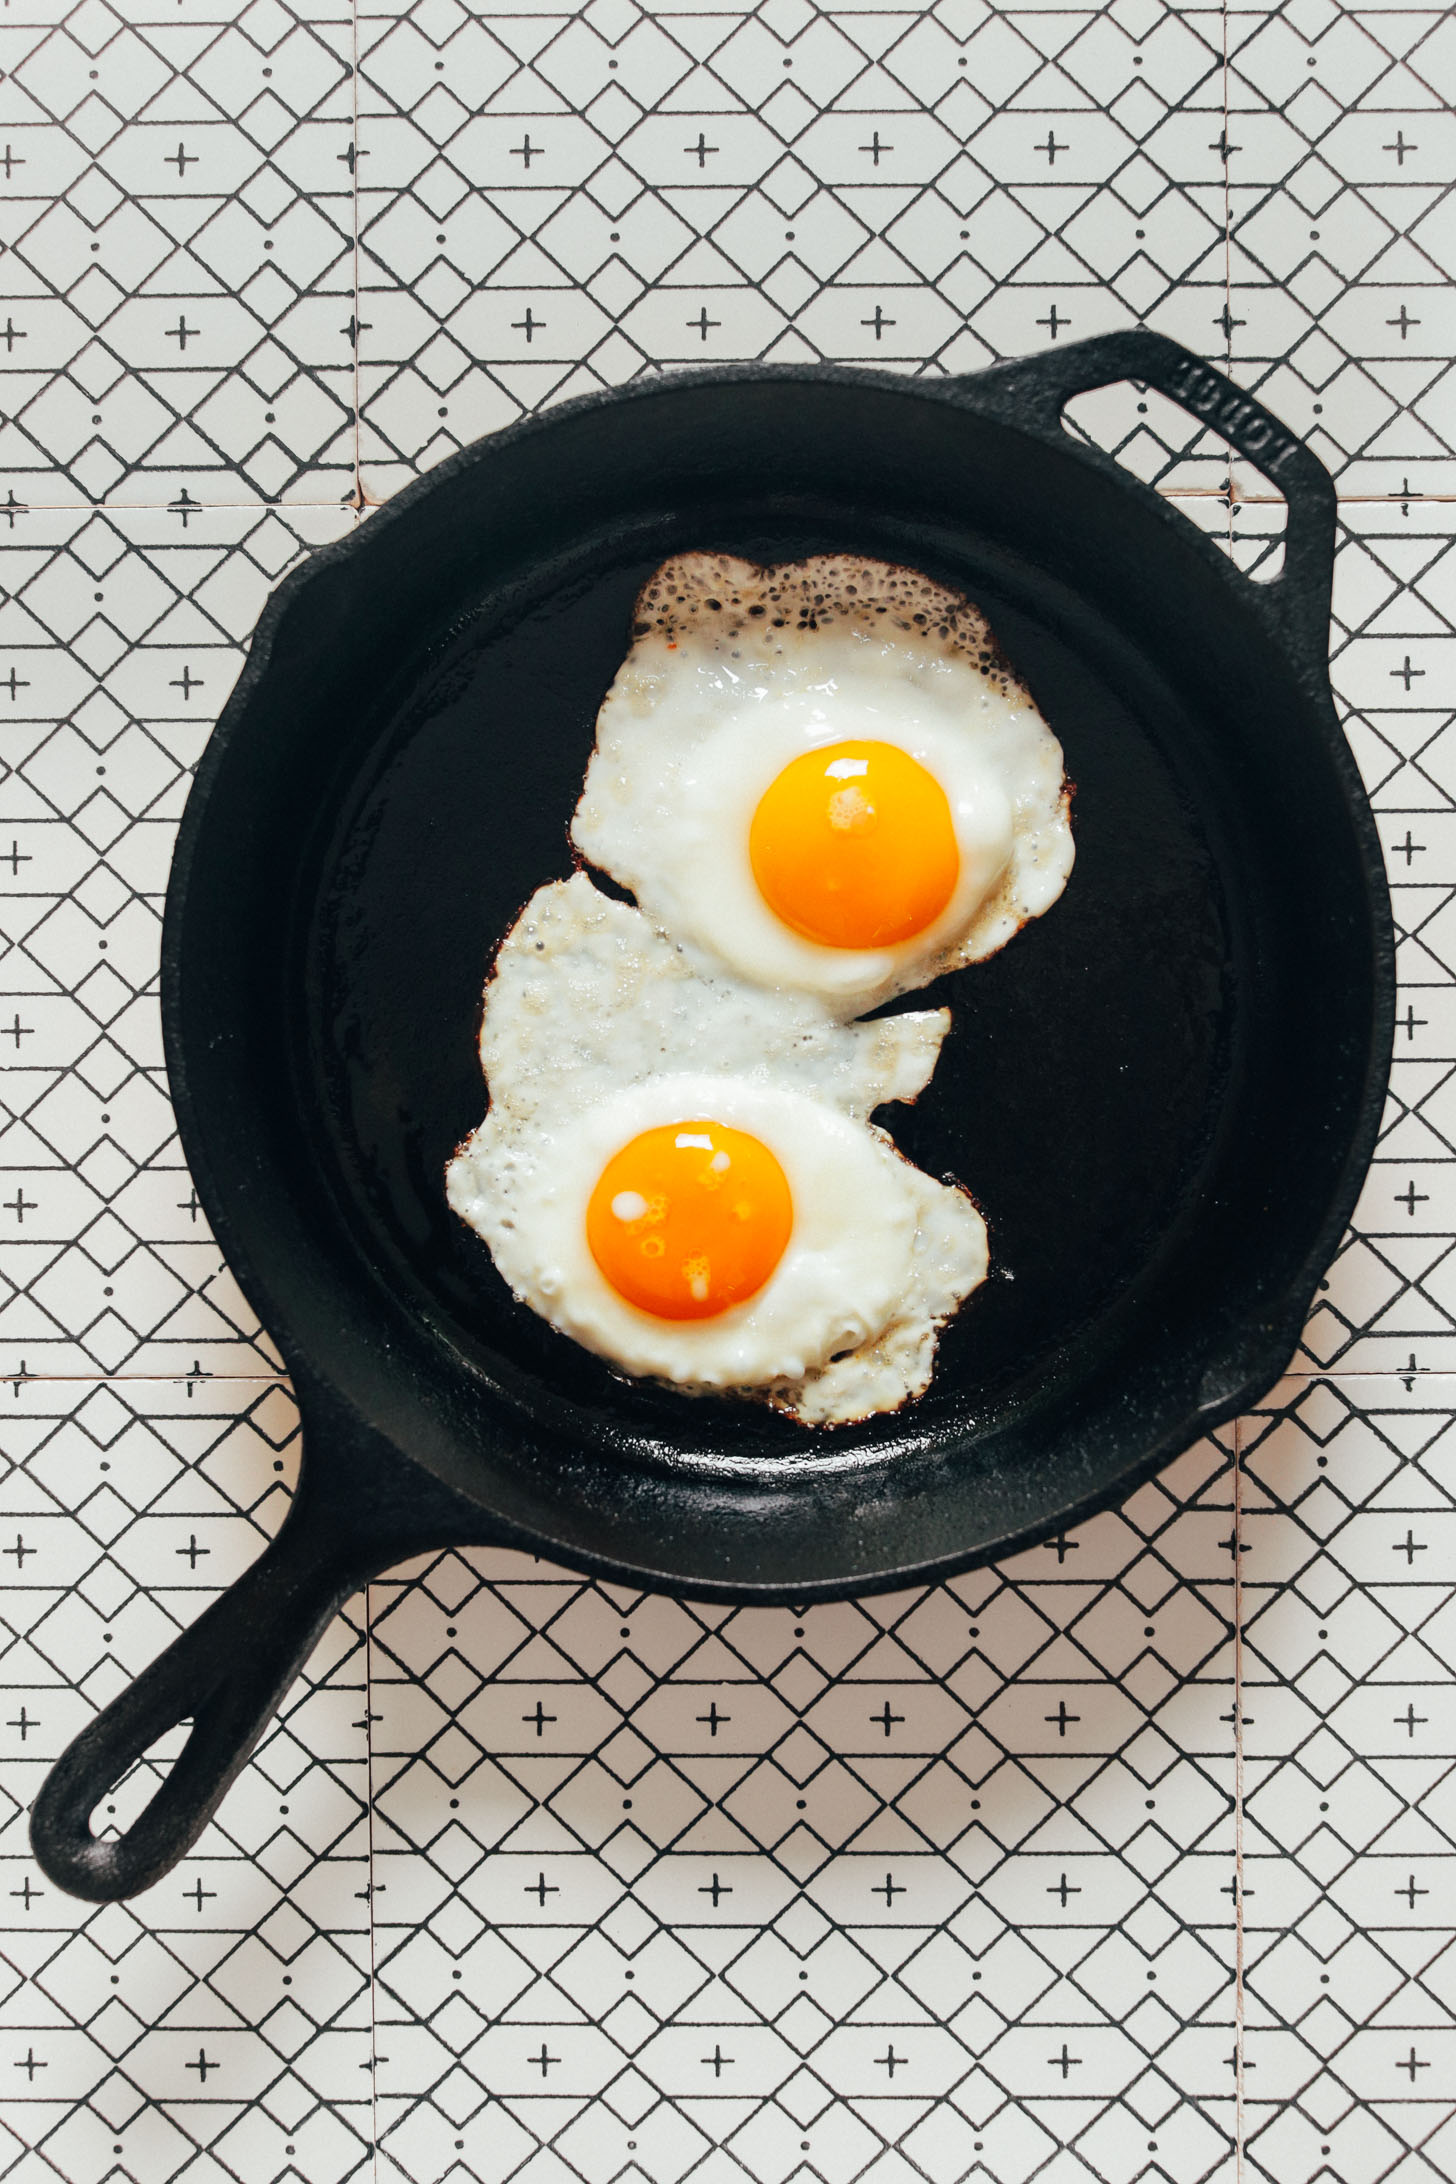 Two fried eggs in a cast-iron skillet for making Bibimbap